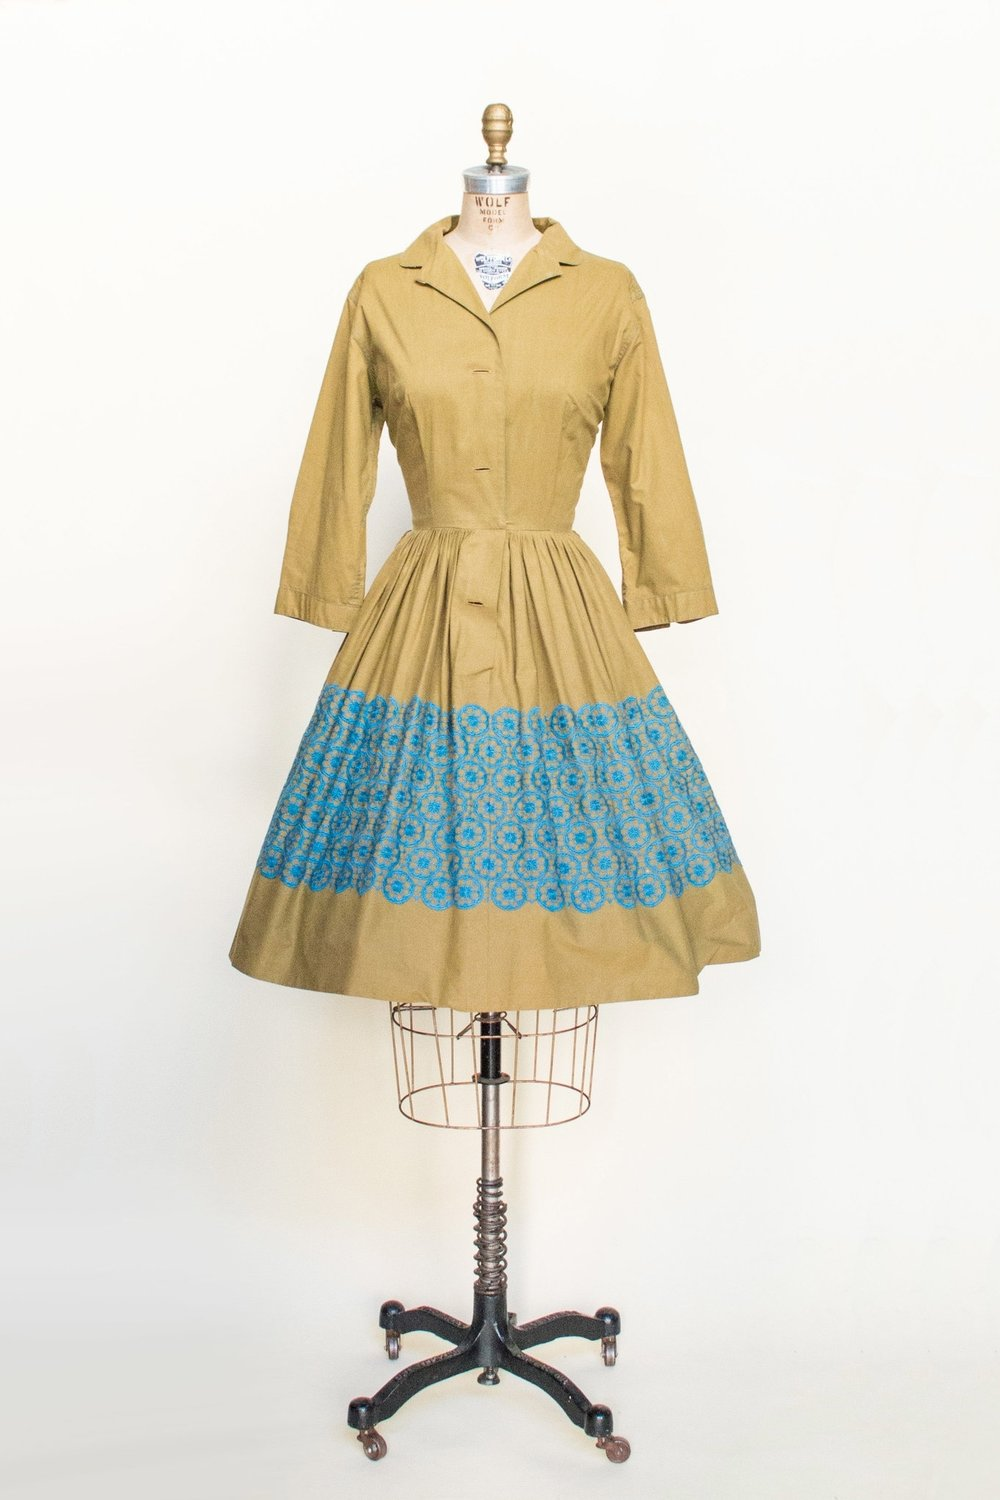 Vintage 1950's day dress from Dalena's Attic.